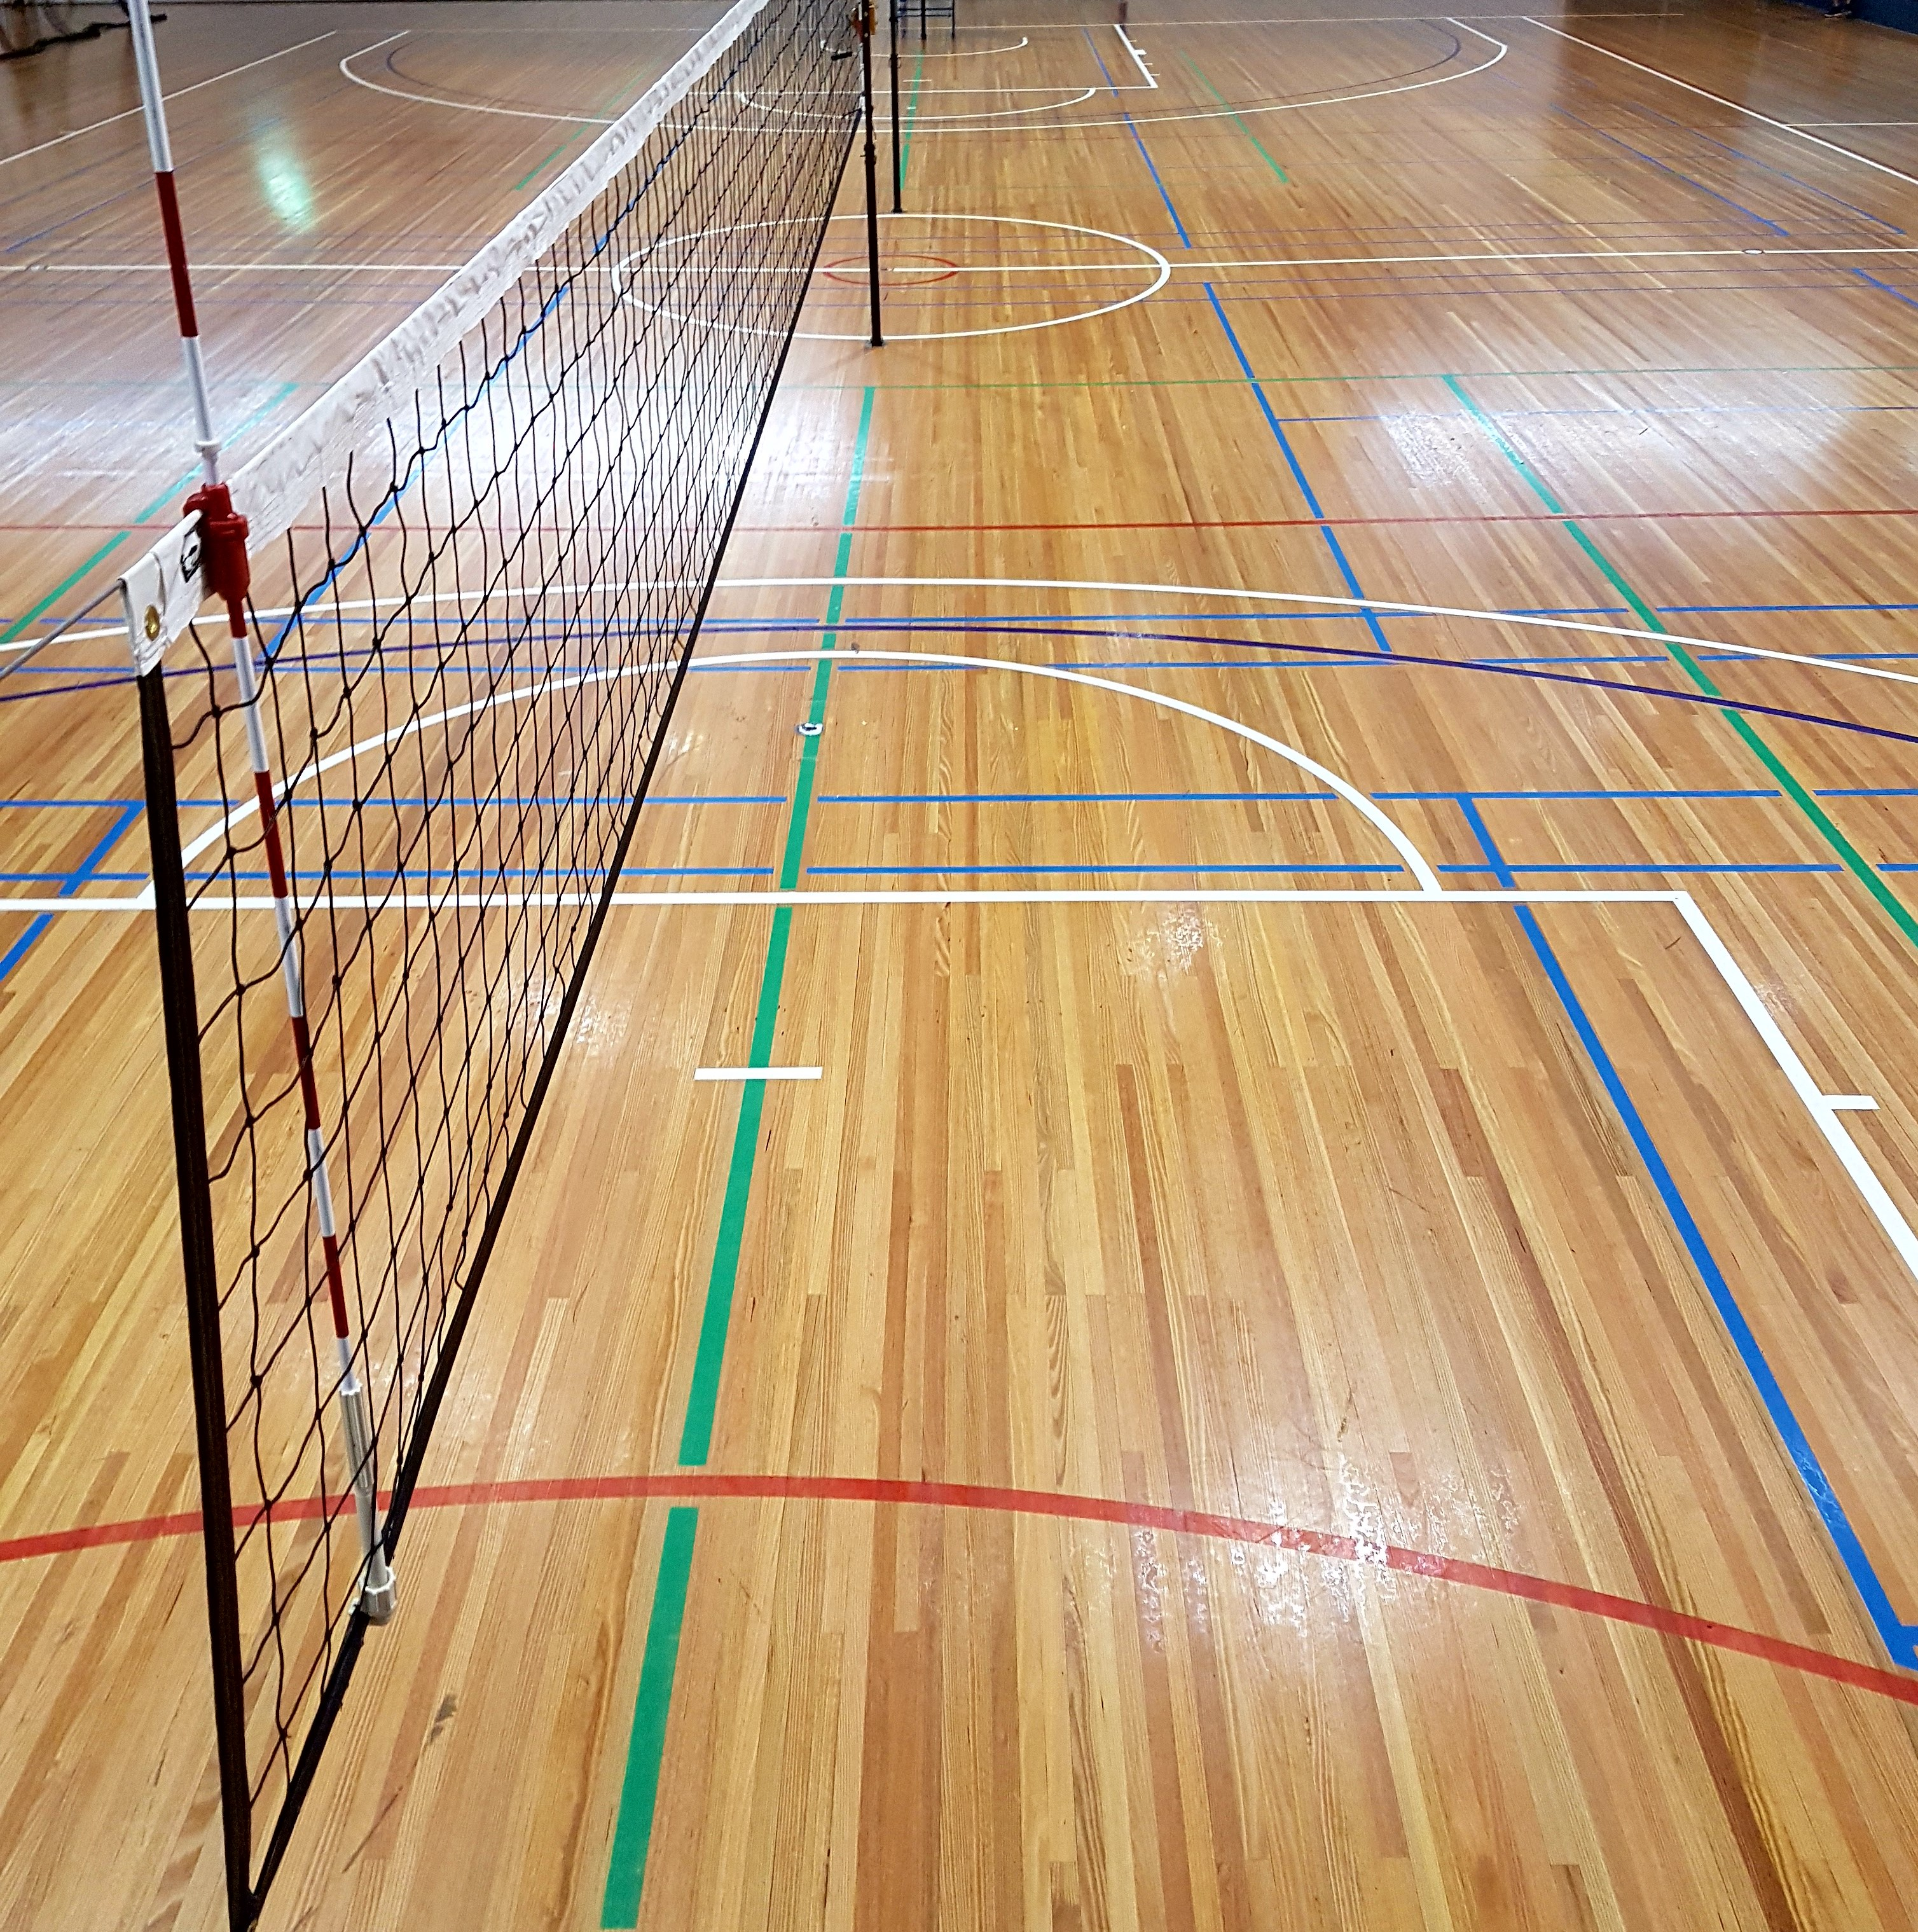 Play Social Volleyball with CitySide Sports in Braybrook or Reservoir